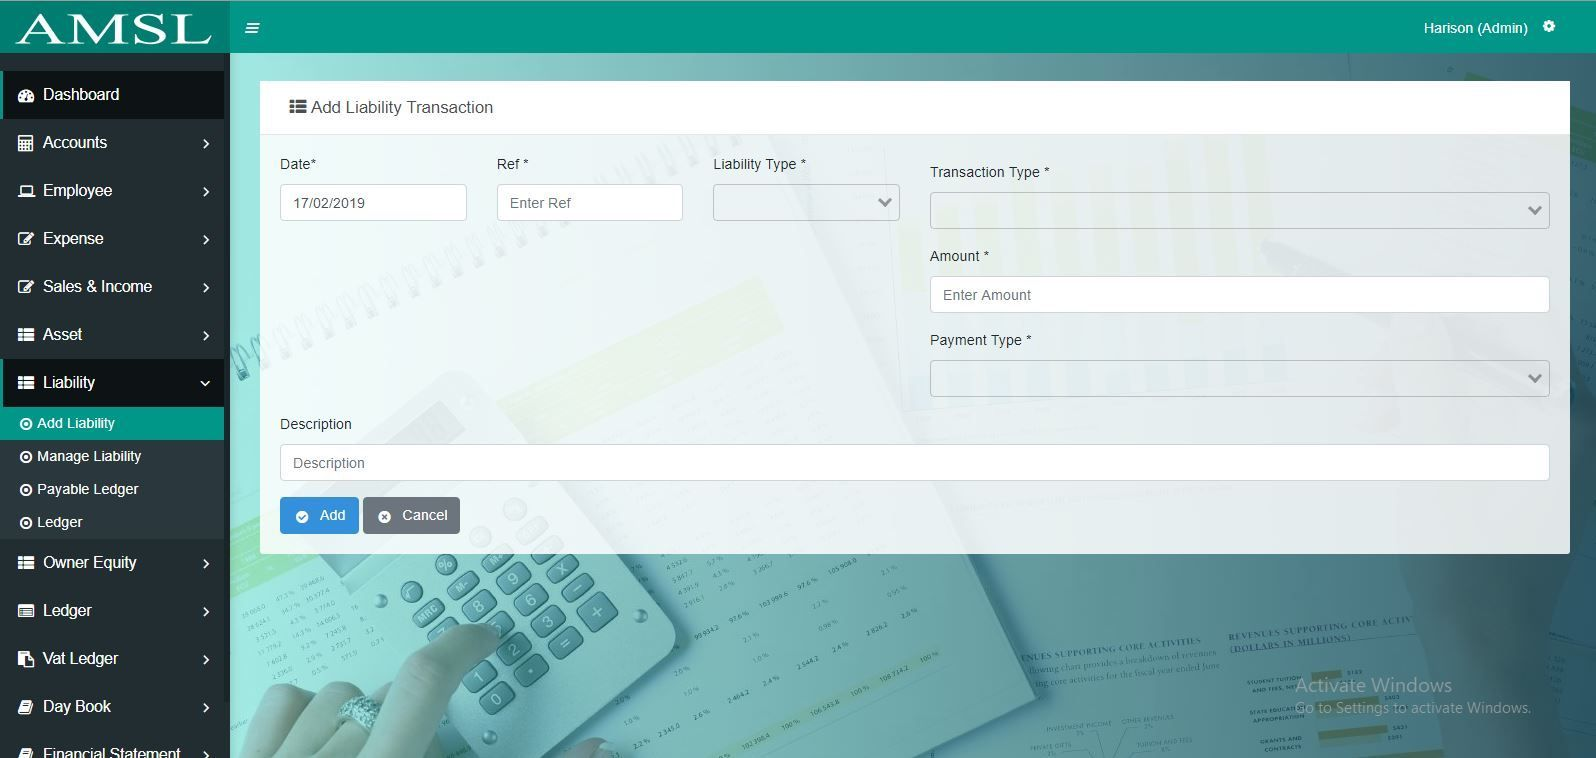 AMSL - Service Based Accounting Management System  Screenshot 6